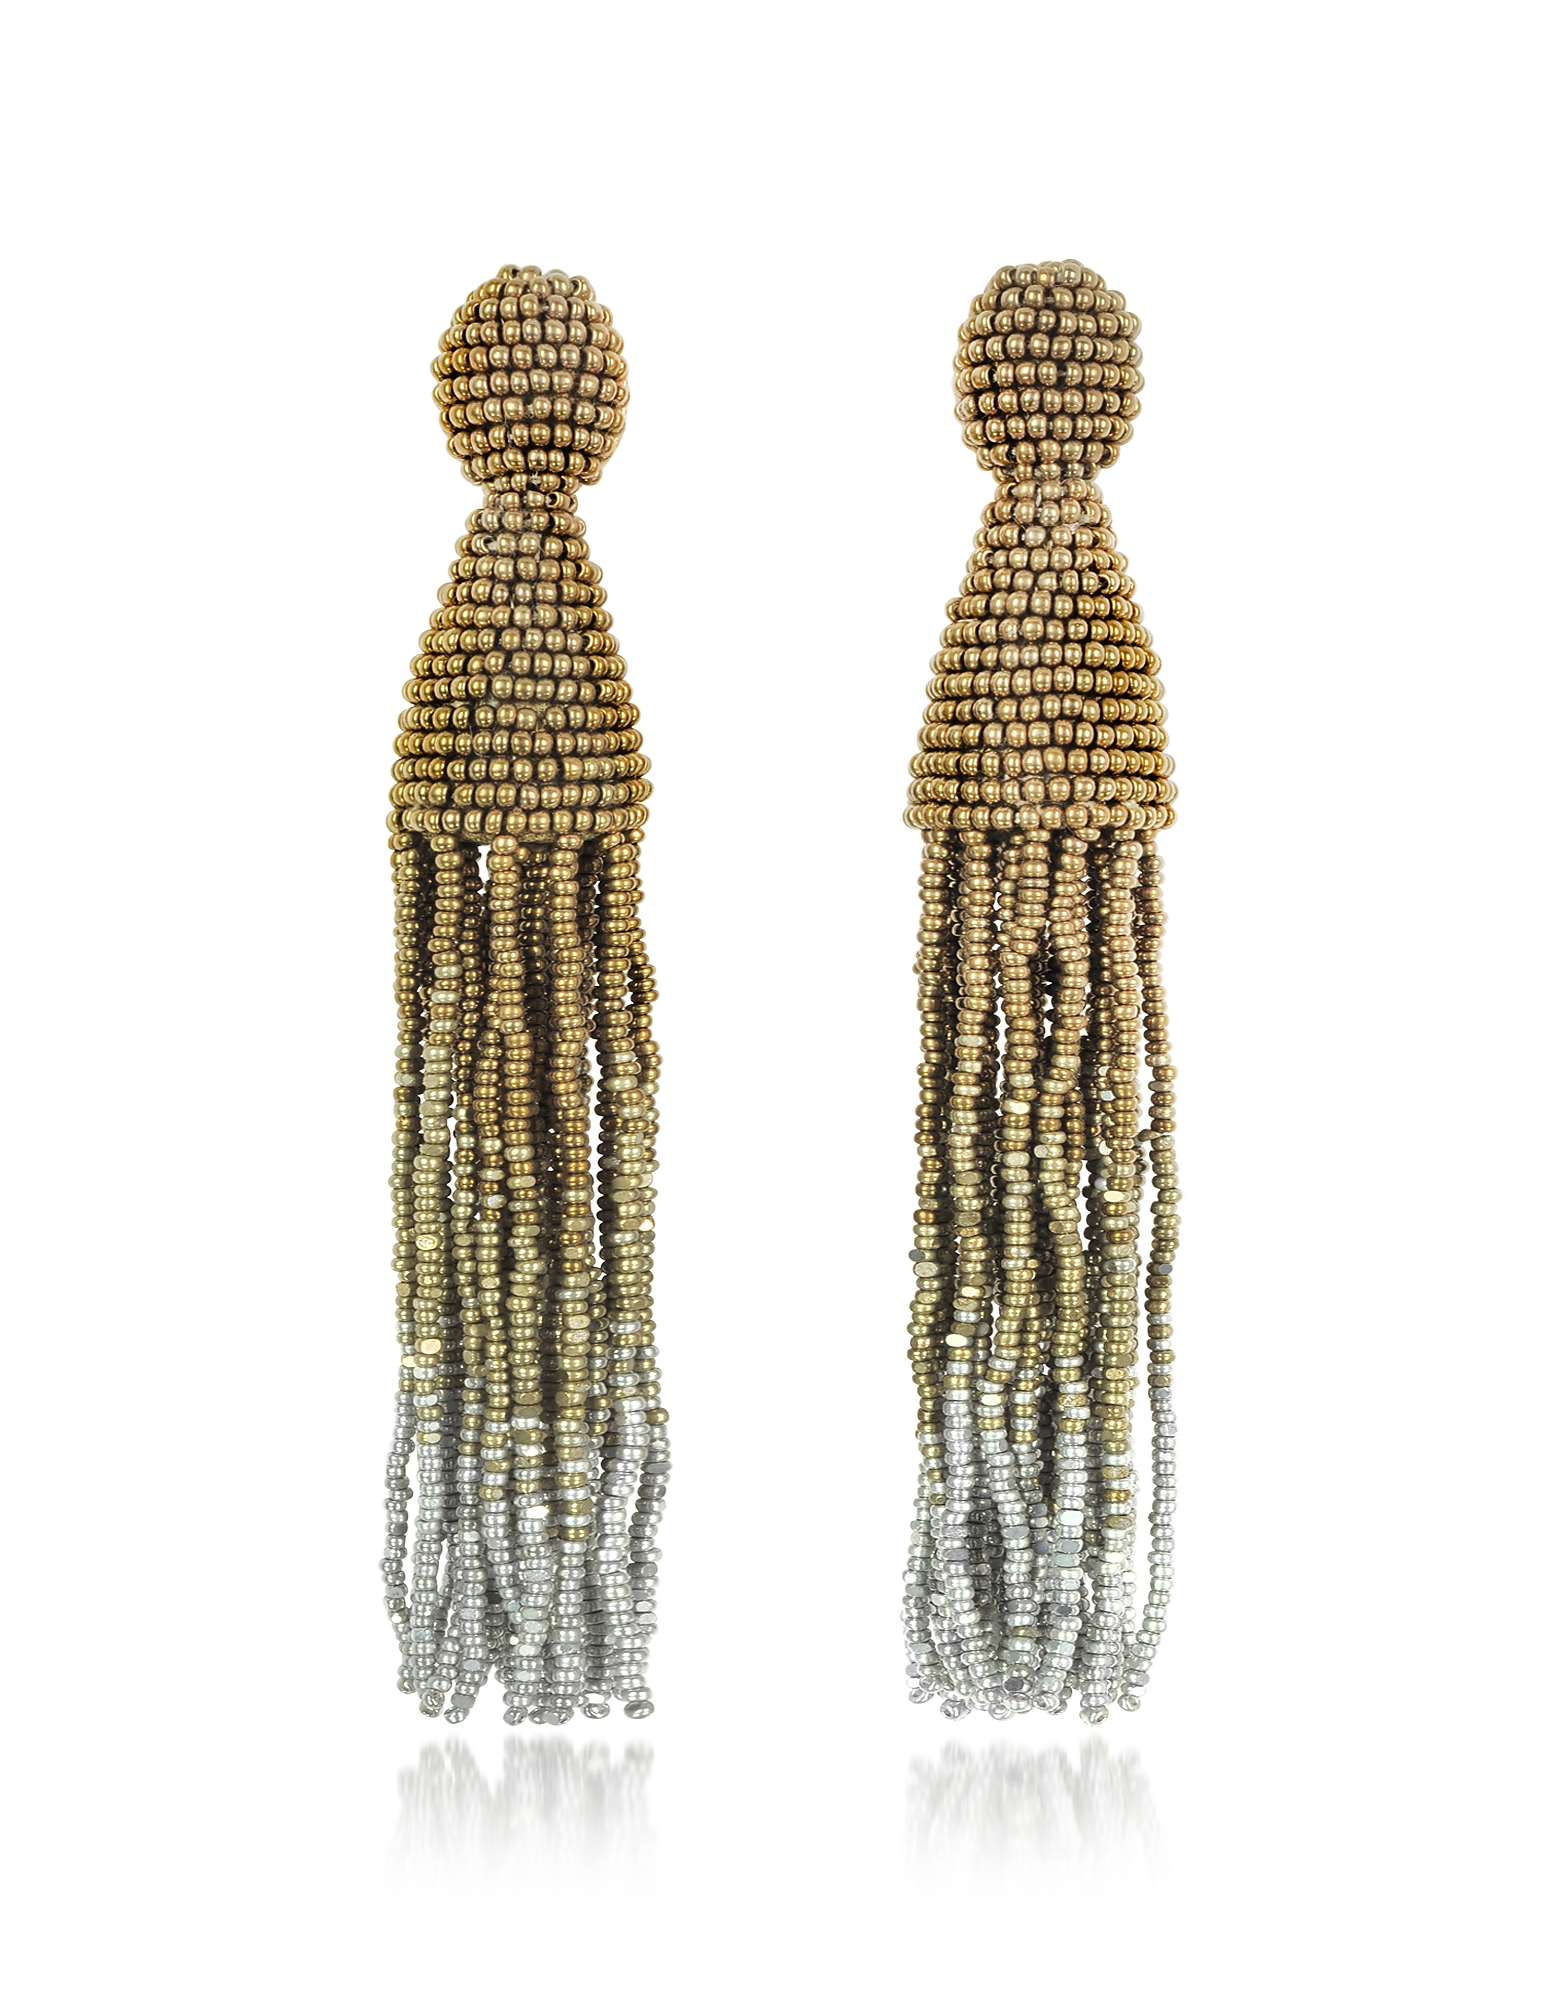 Oscar de la Renta Earrings, Long Ombre Tassel Clip-On Earrings